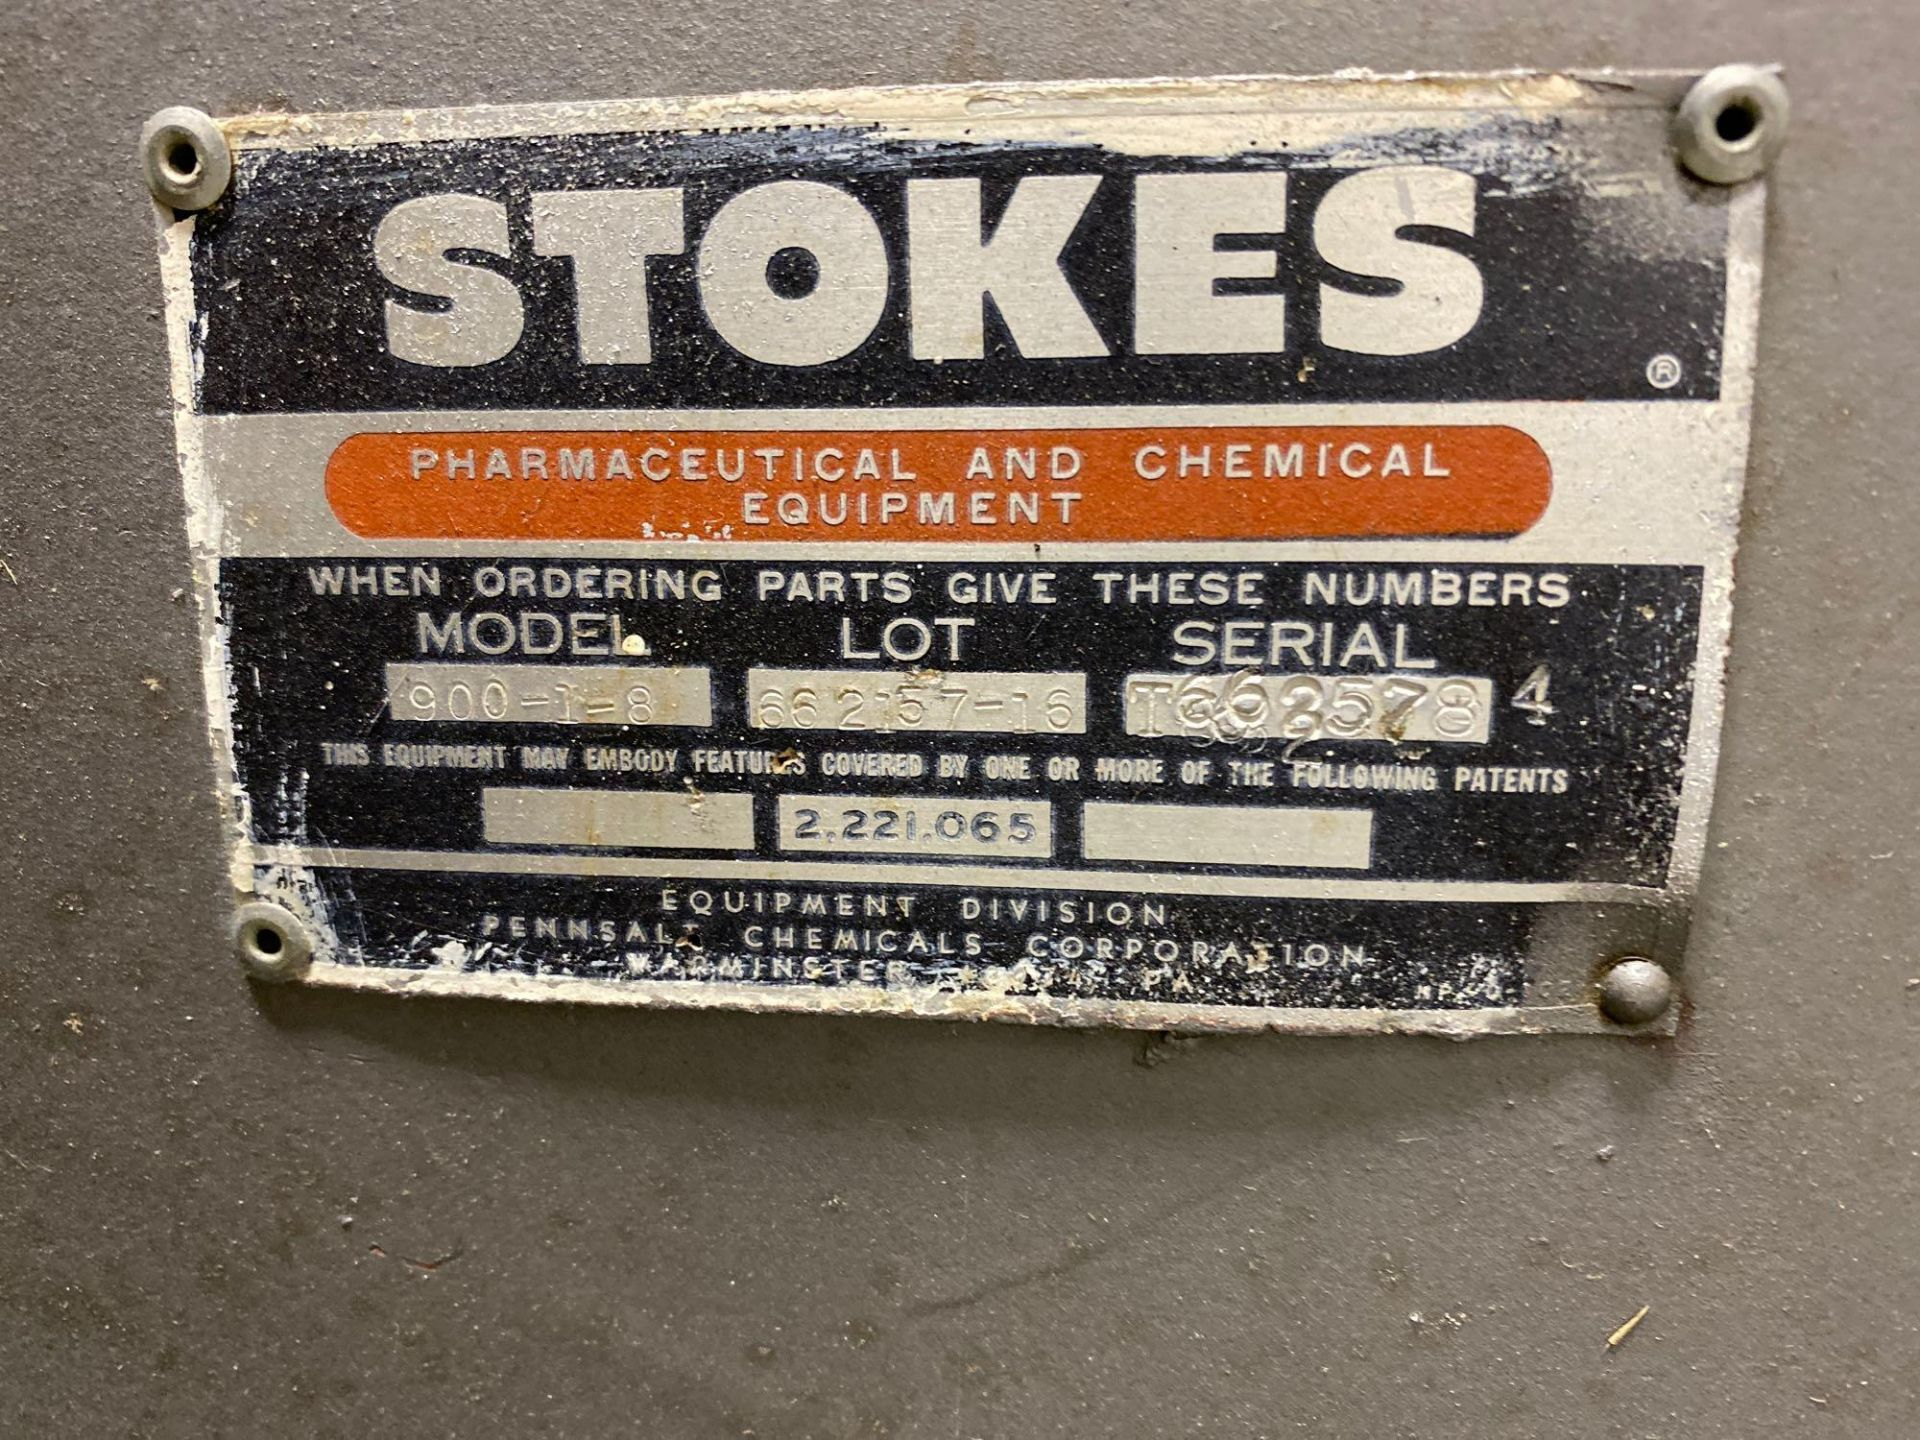 """Stokes 42""""d Coating Pan 900-1-8 - Image 4 of 7"""